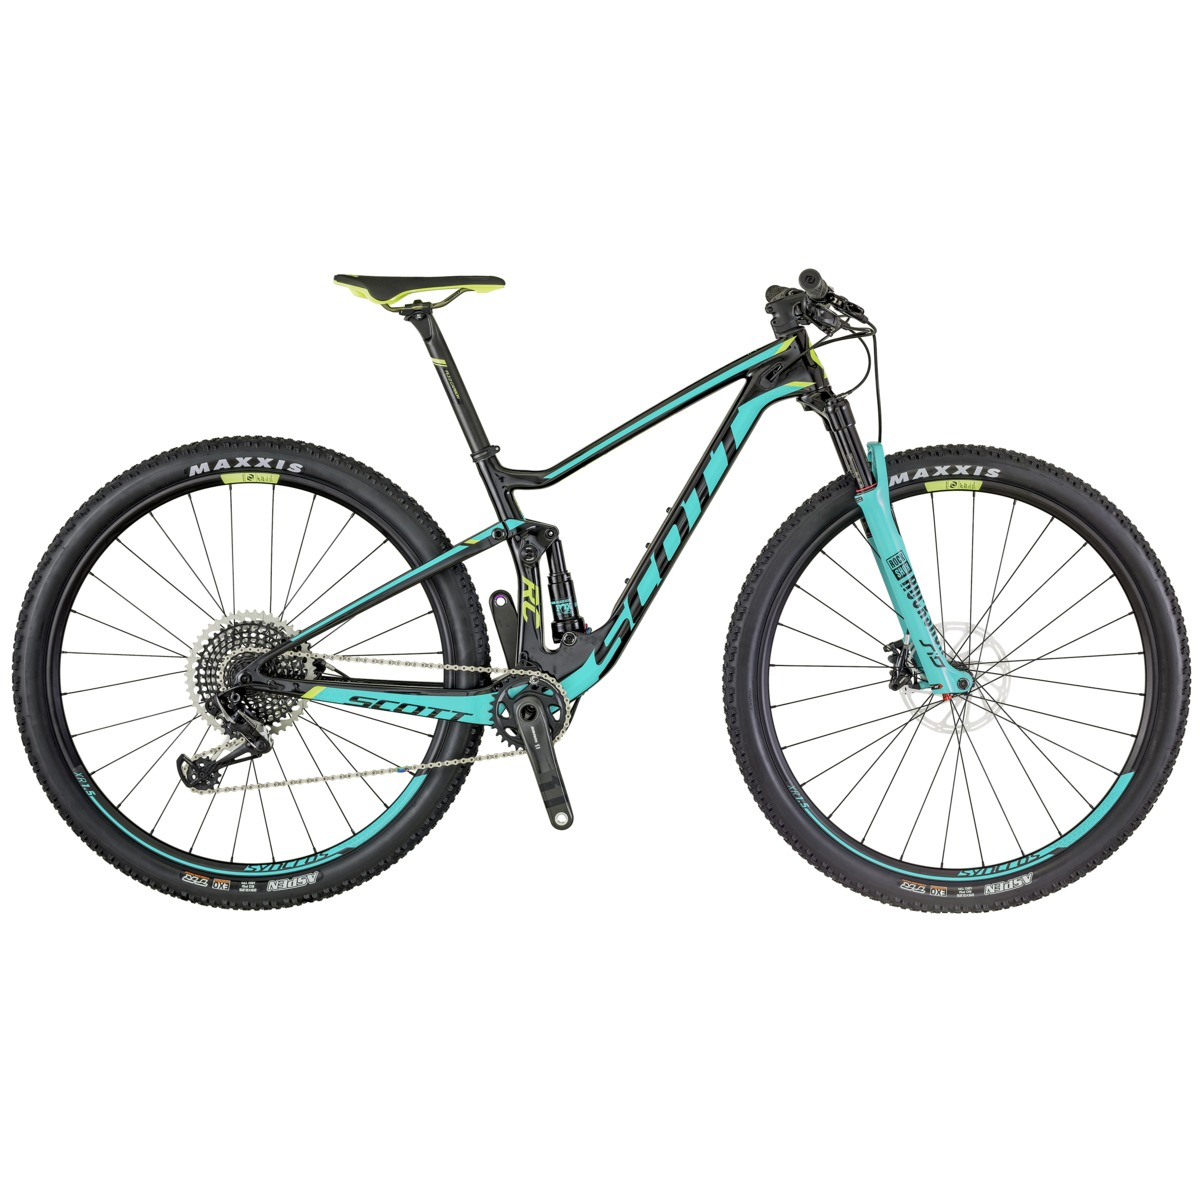 3eebd64a3aa Scott Contessa Spark RC 900 Mountain Bike 2018 Black £4,999.00